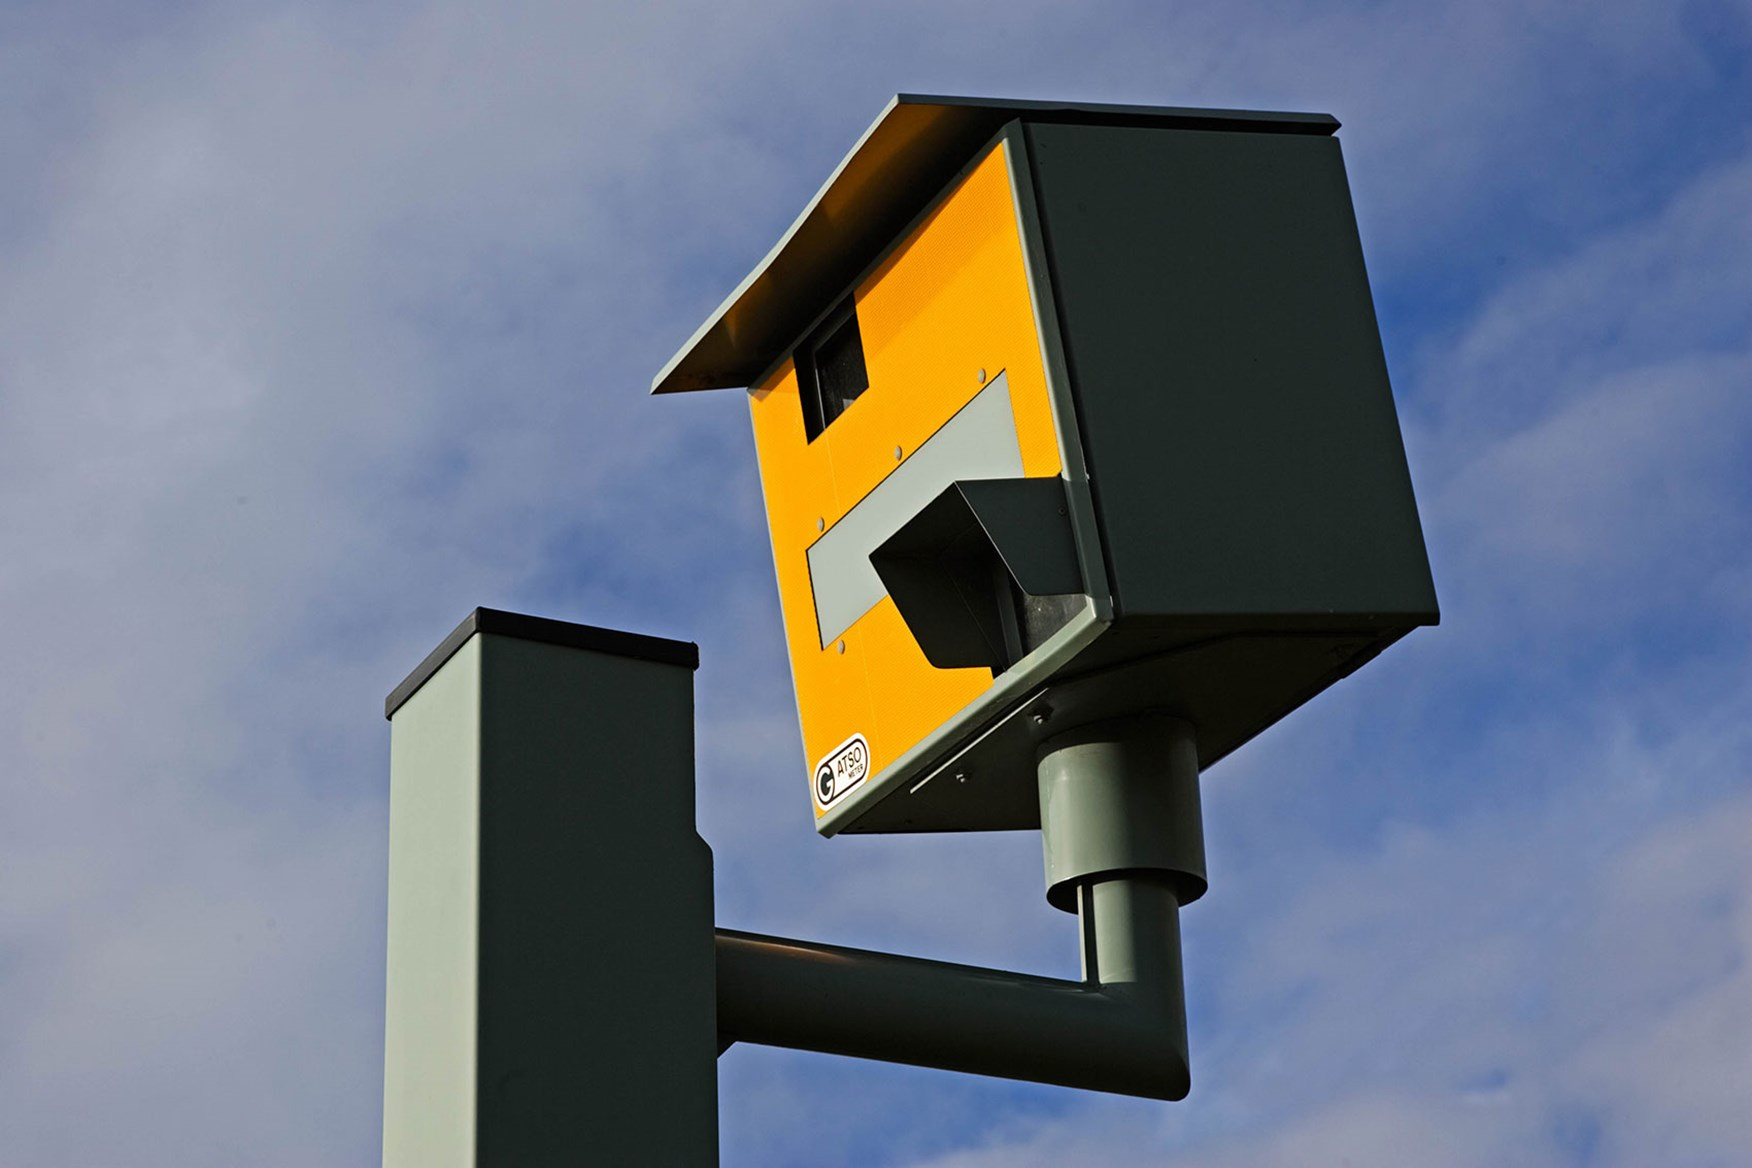 speed cameras Speed cameras synonyms, speed cameras pronunciation, speed cameras translation, english dictionary definition of speed cameras n 1 a fixed camera that photographs vehicles breaking the speed limit on a certain stretch of road 2 a fixed camera that photographs vehicles breaking the.